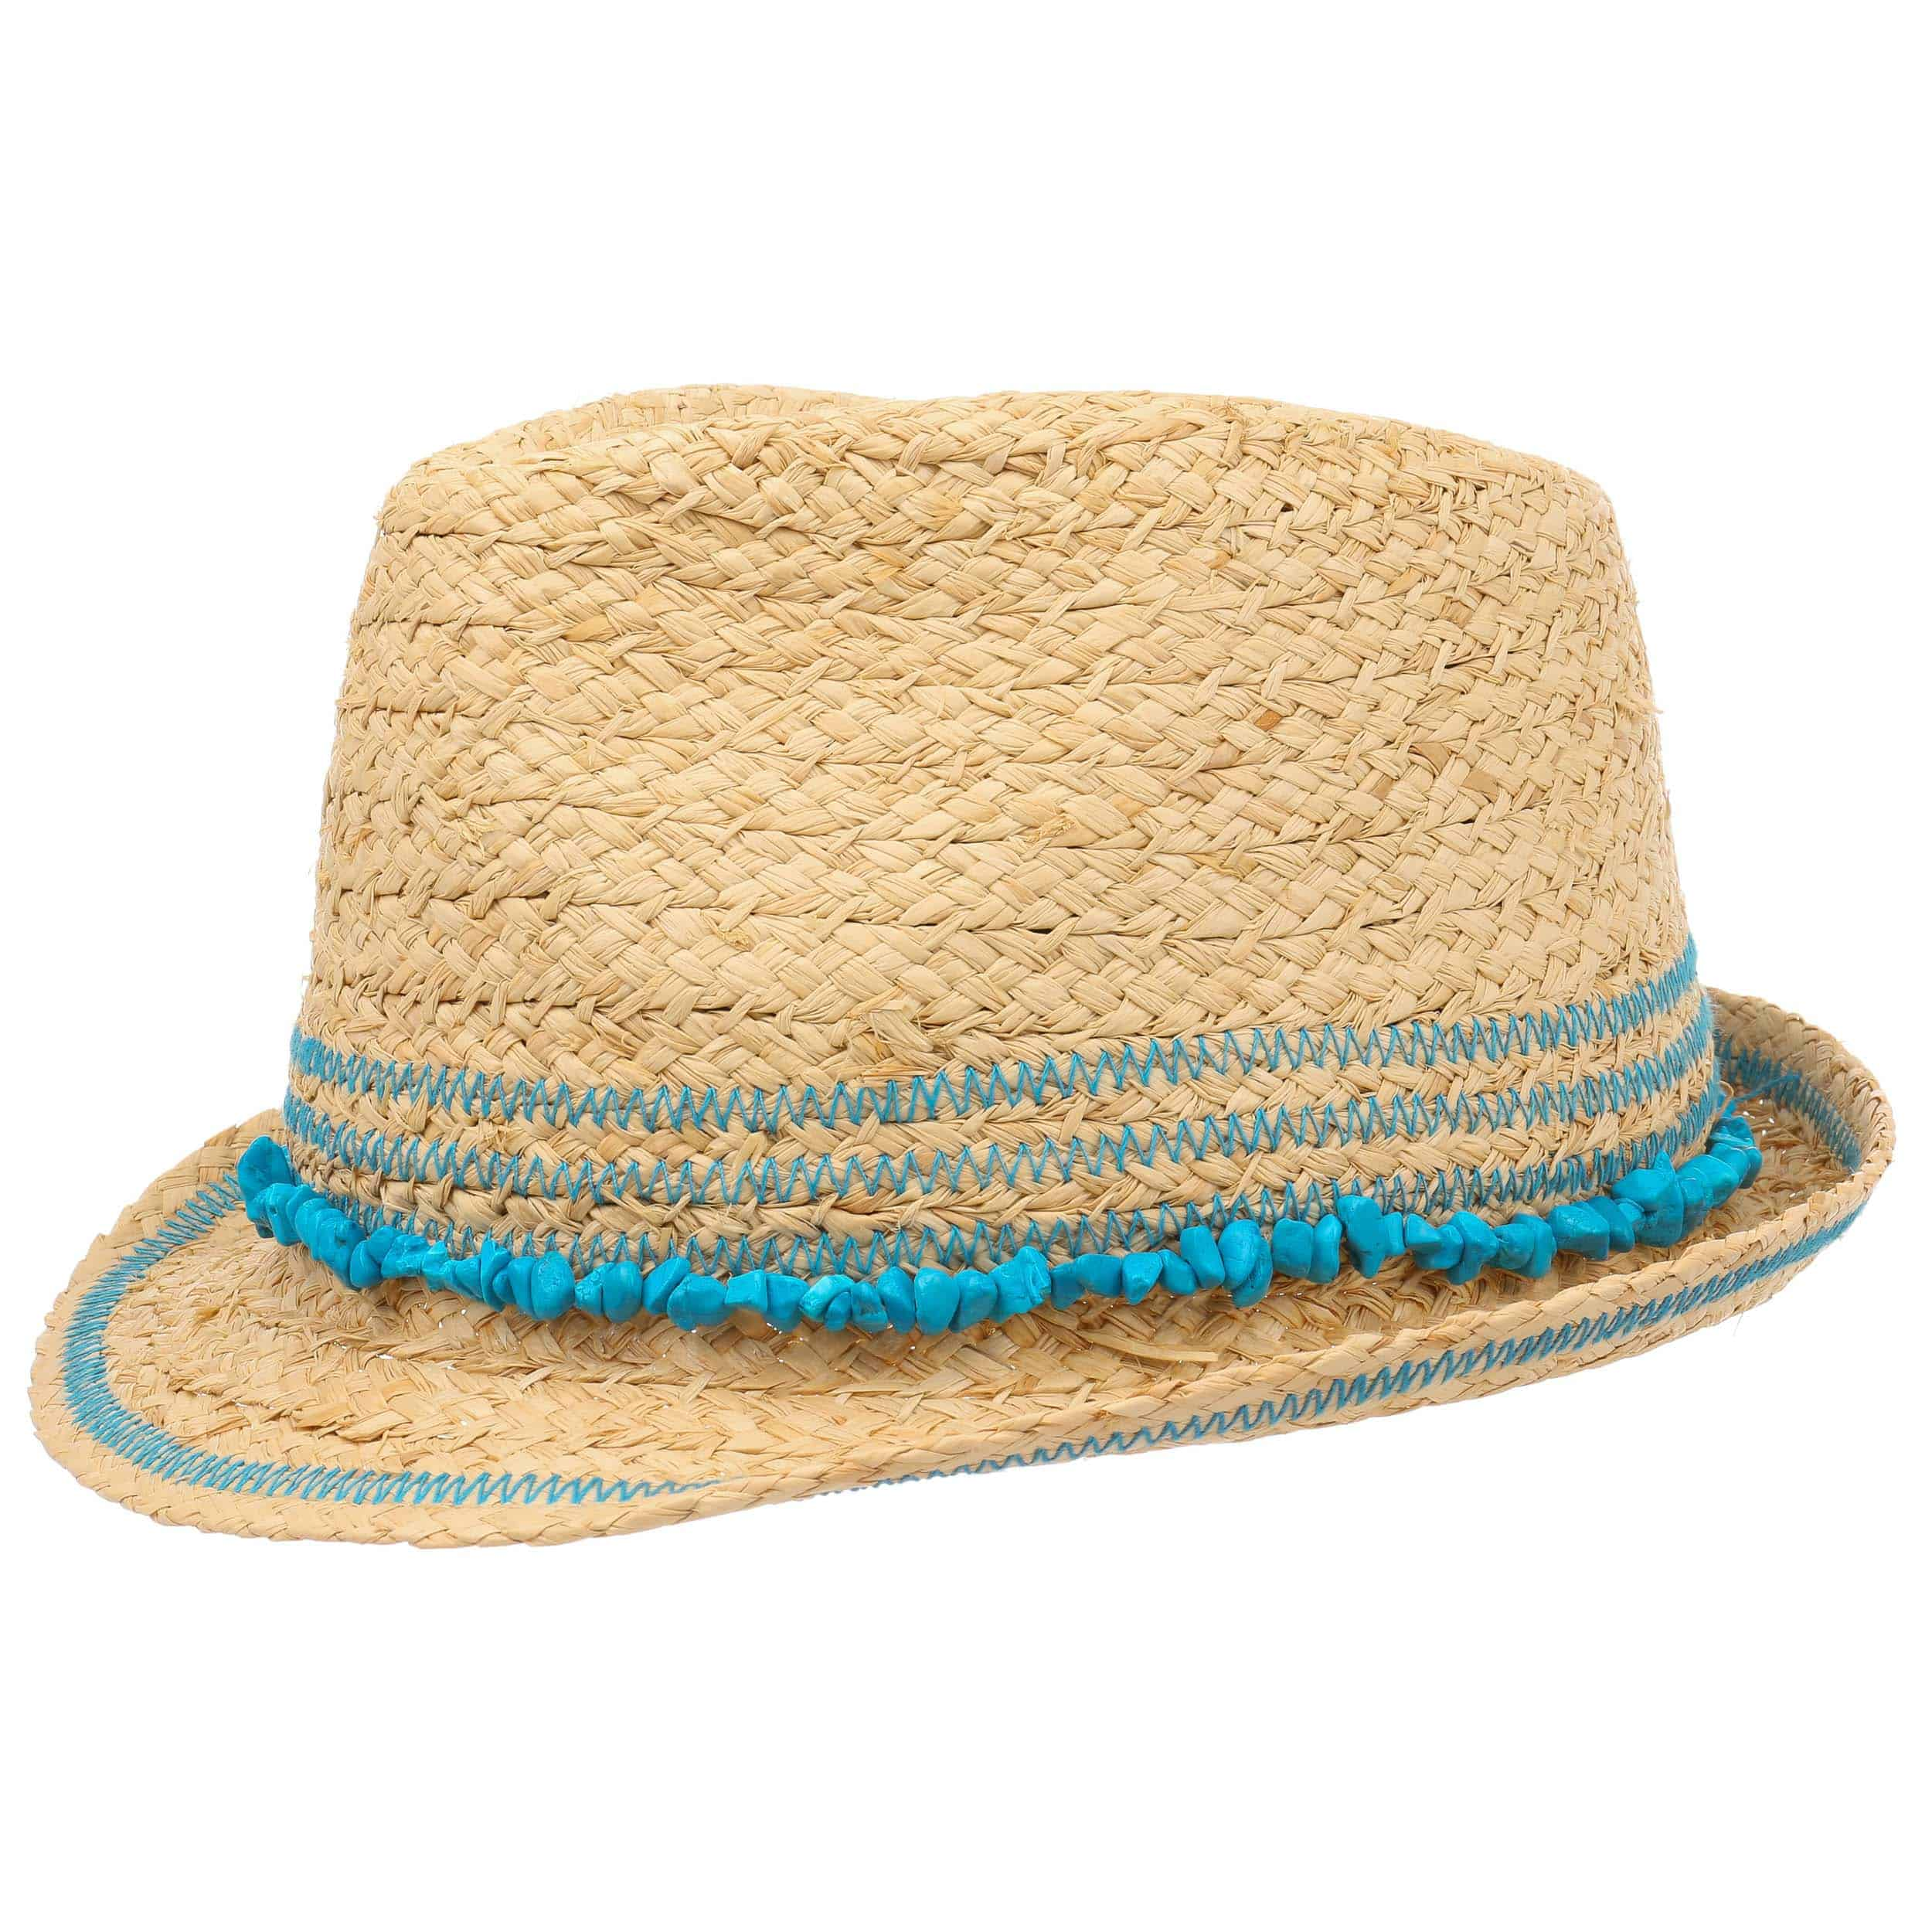 Find the best selection of cheap kids straw hat in bulk here at gravitybox.ga Including large elegant straw hats and purple flower straw hat at wholesale prices from kids straw hat manufacturers. Source discount and high quality products in hundreds of categories wholesale direct from China.